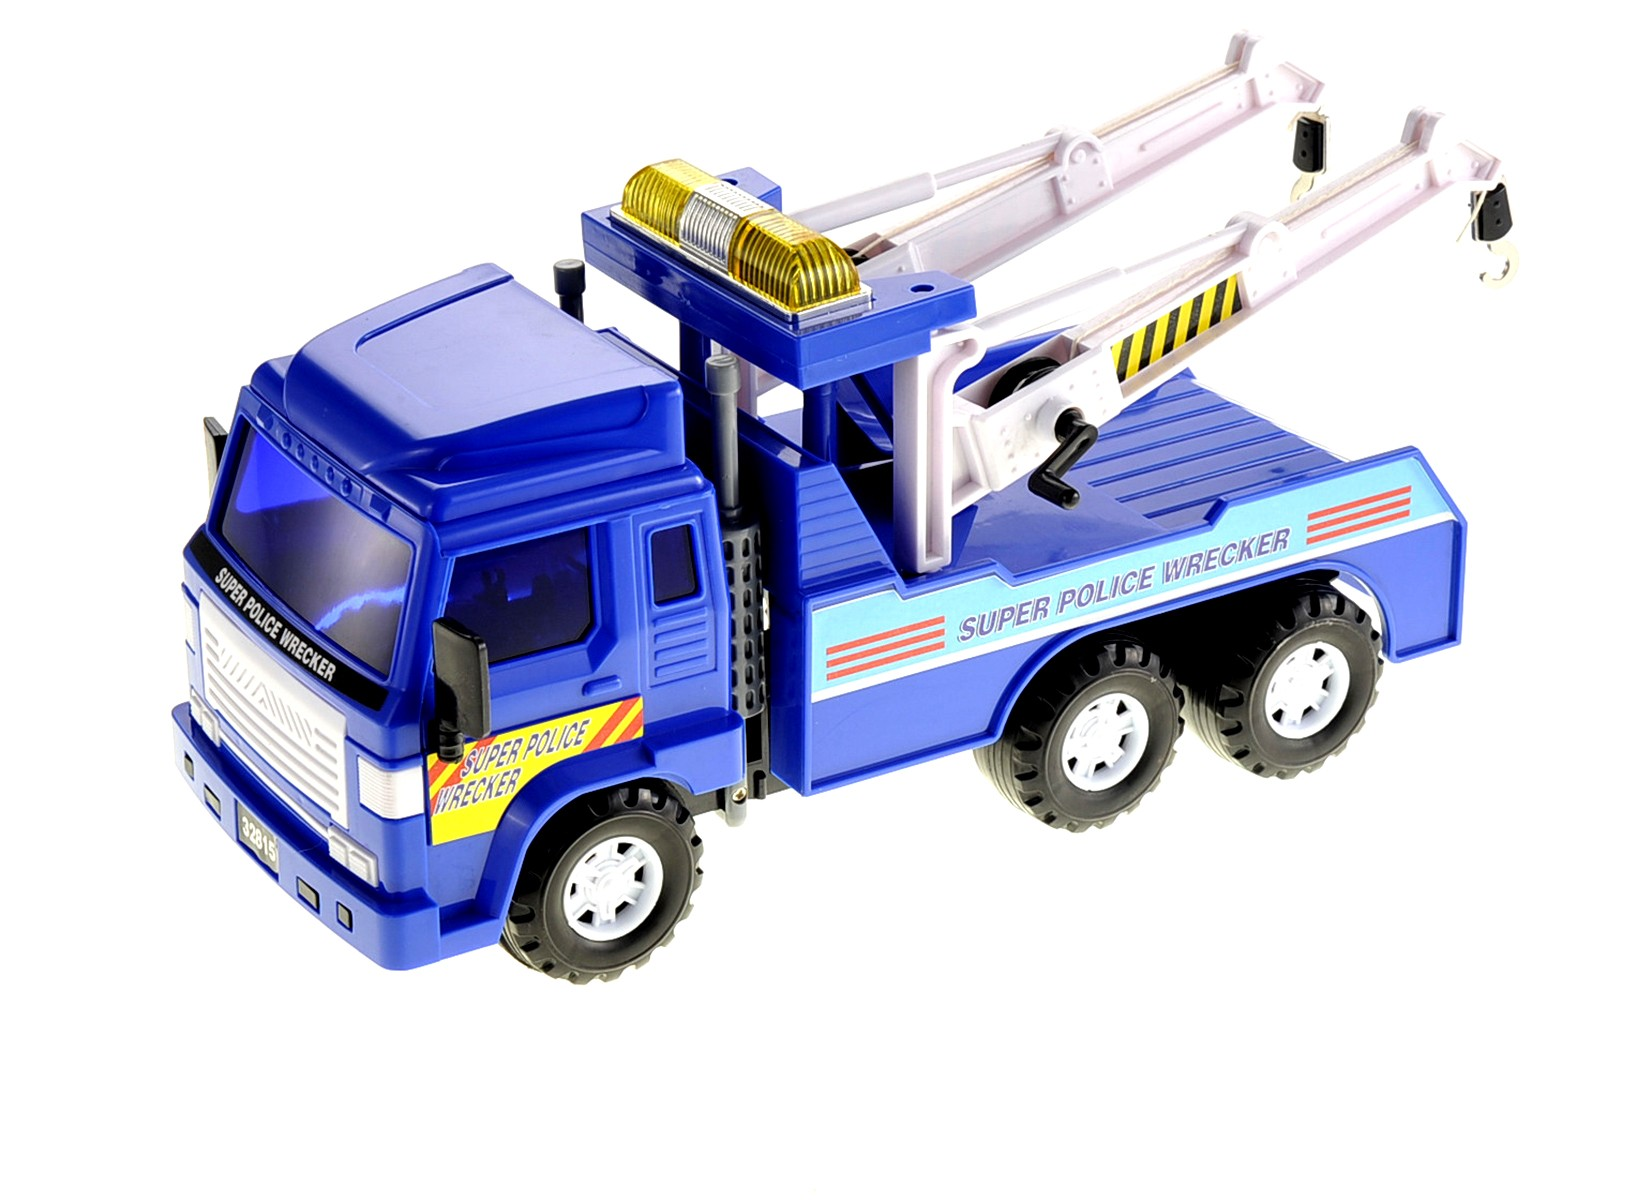 Big Heavy Duty Police Tow Truck With Friction Power